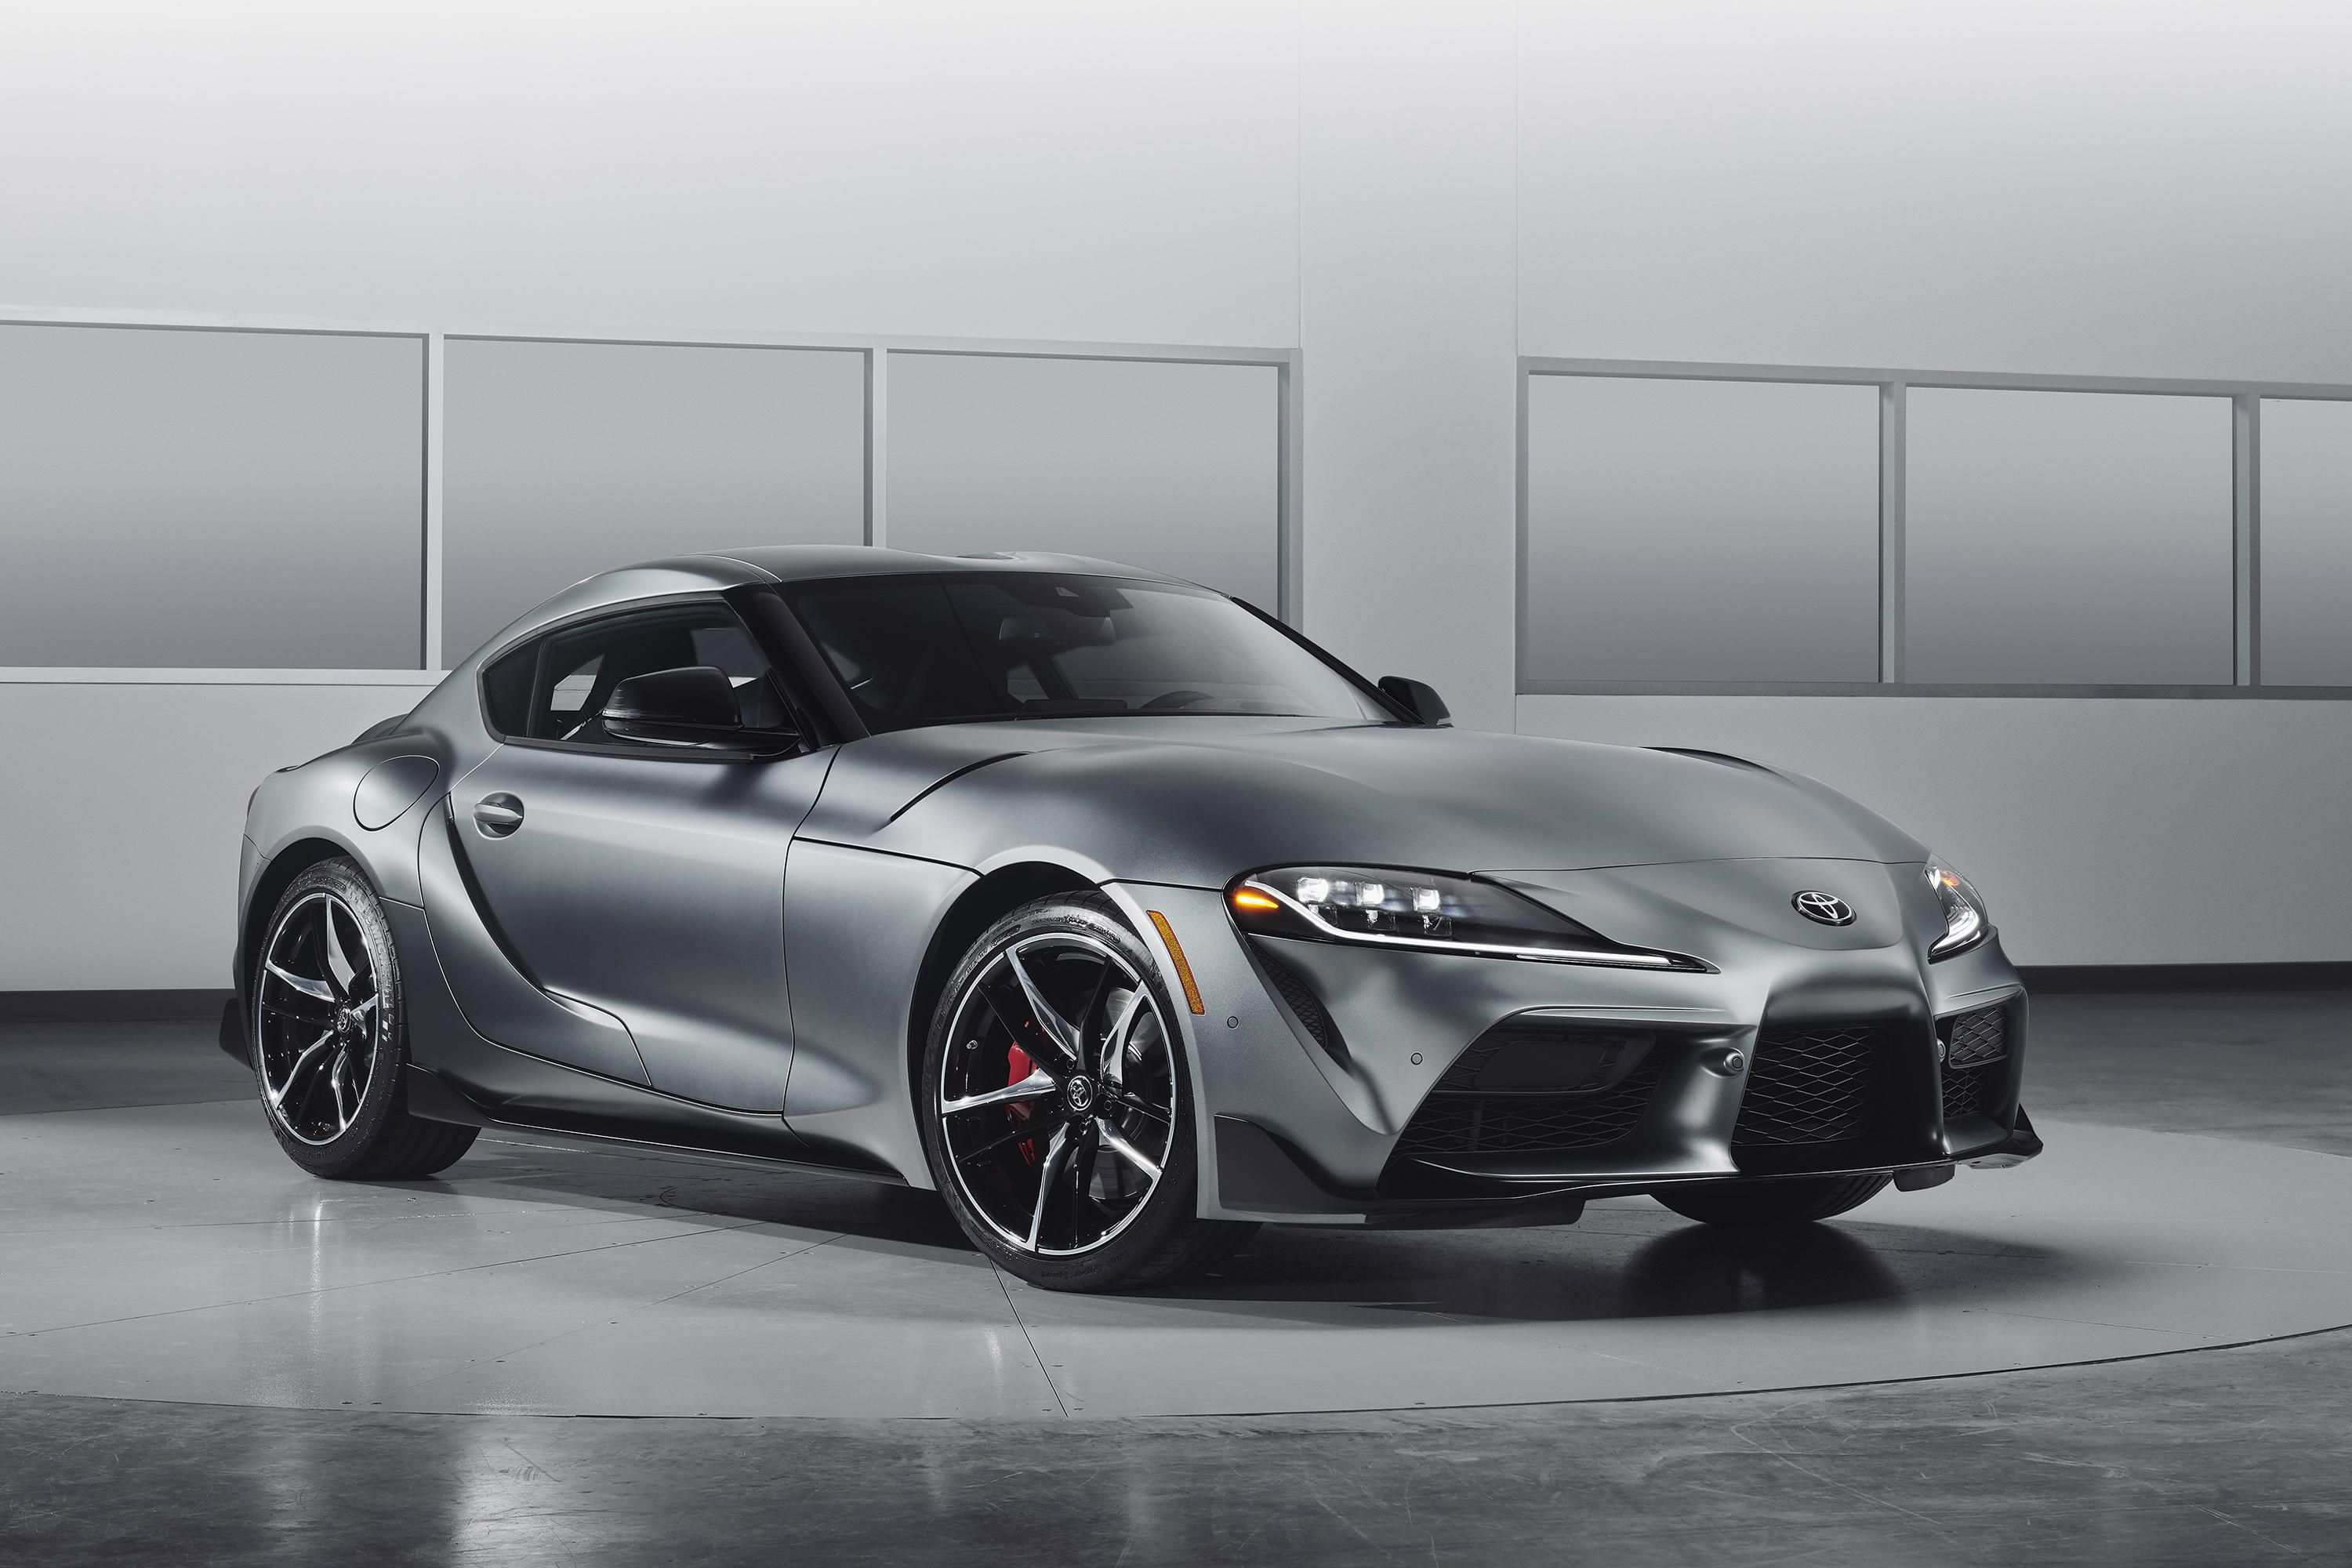 77 The Best Pictures Of The 2020 Toyota Supra Photos